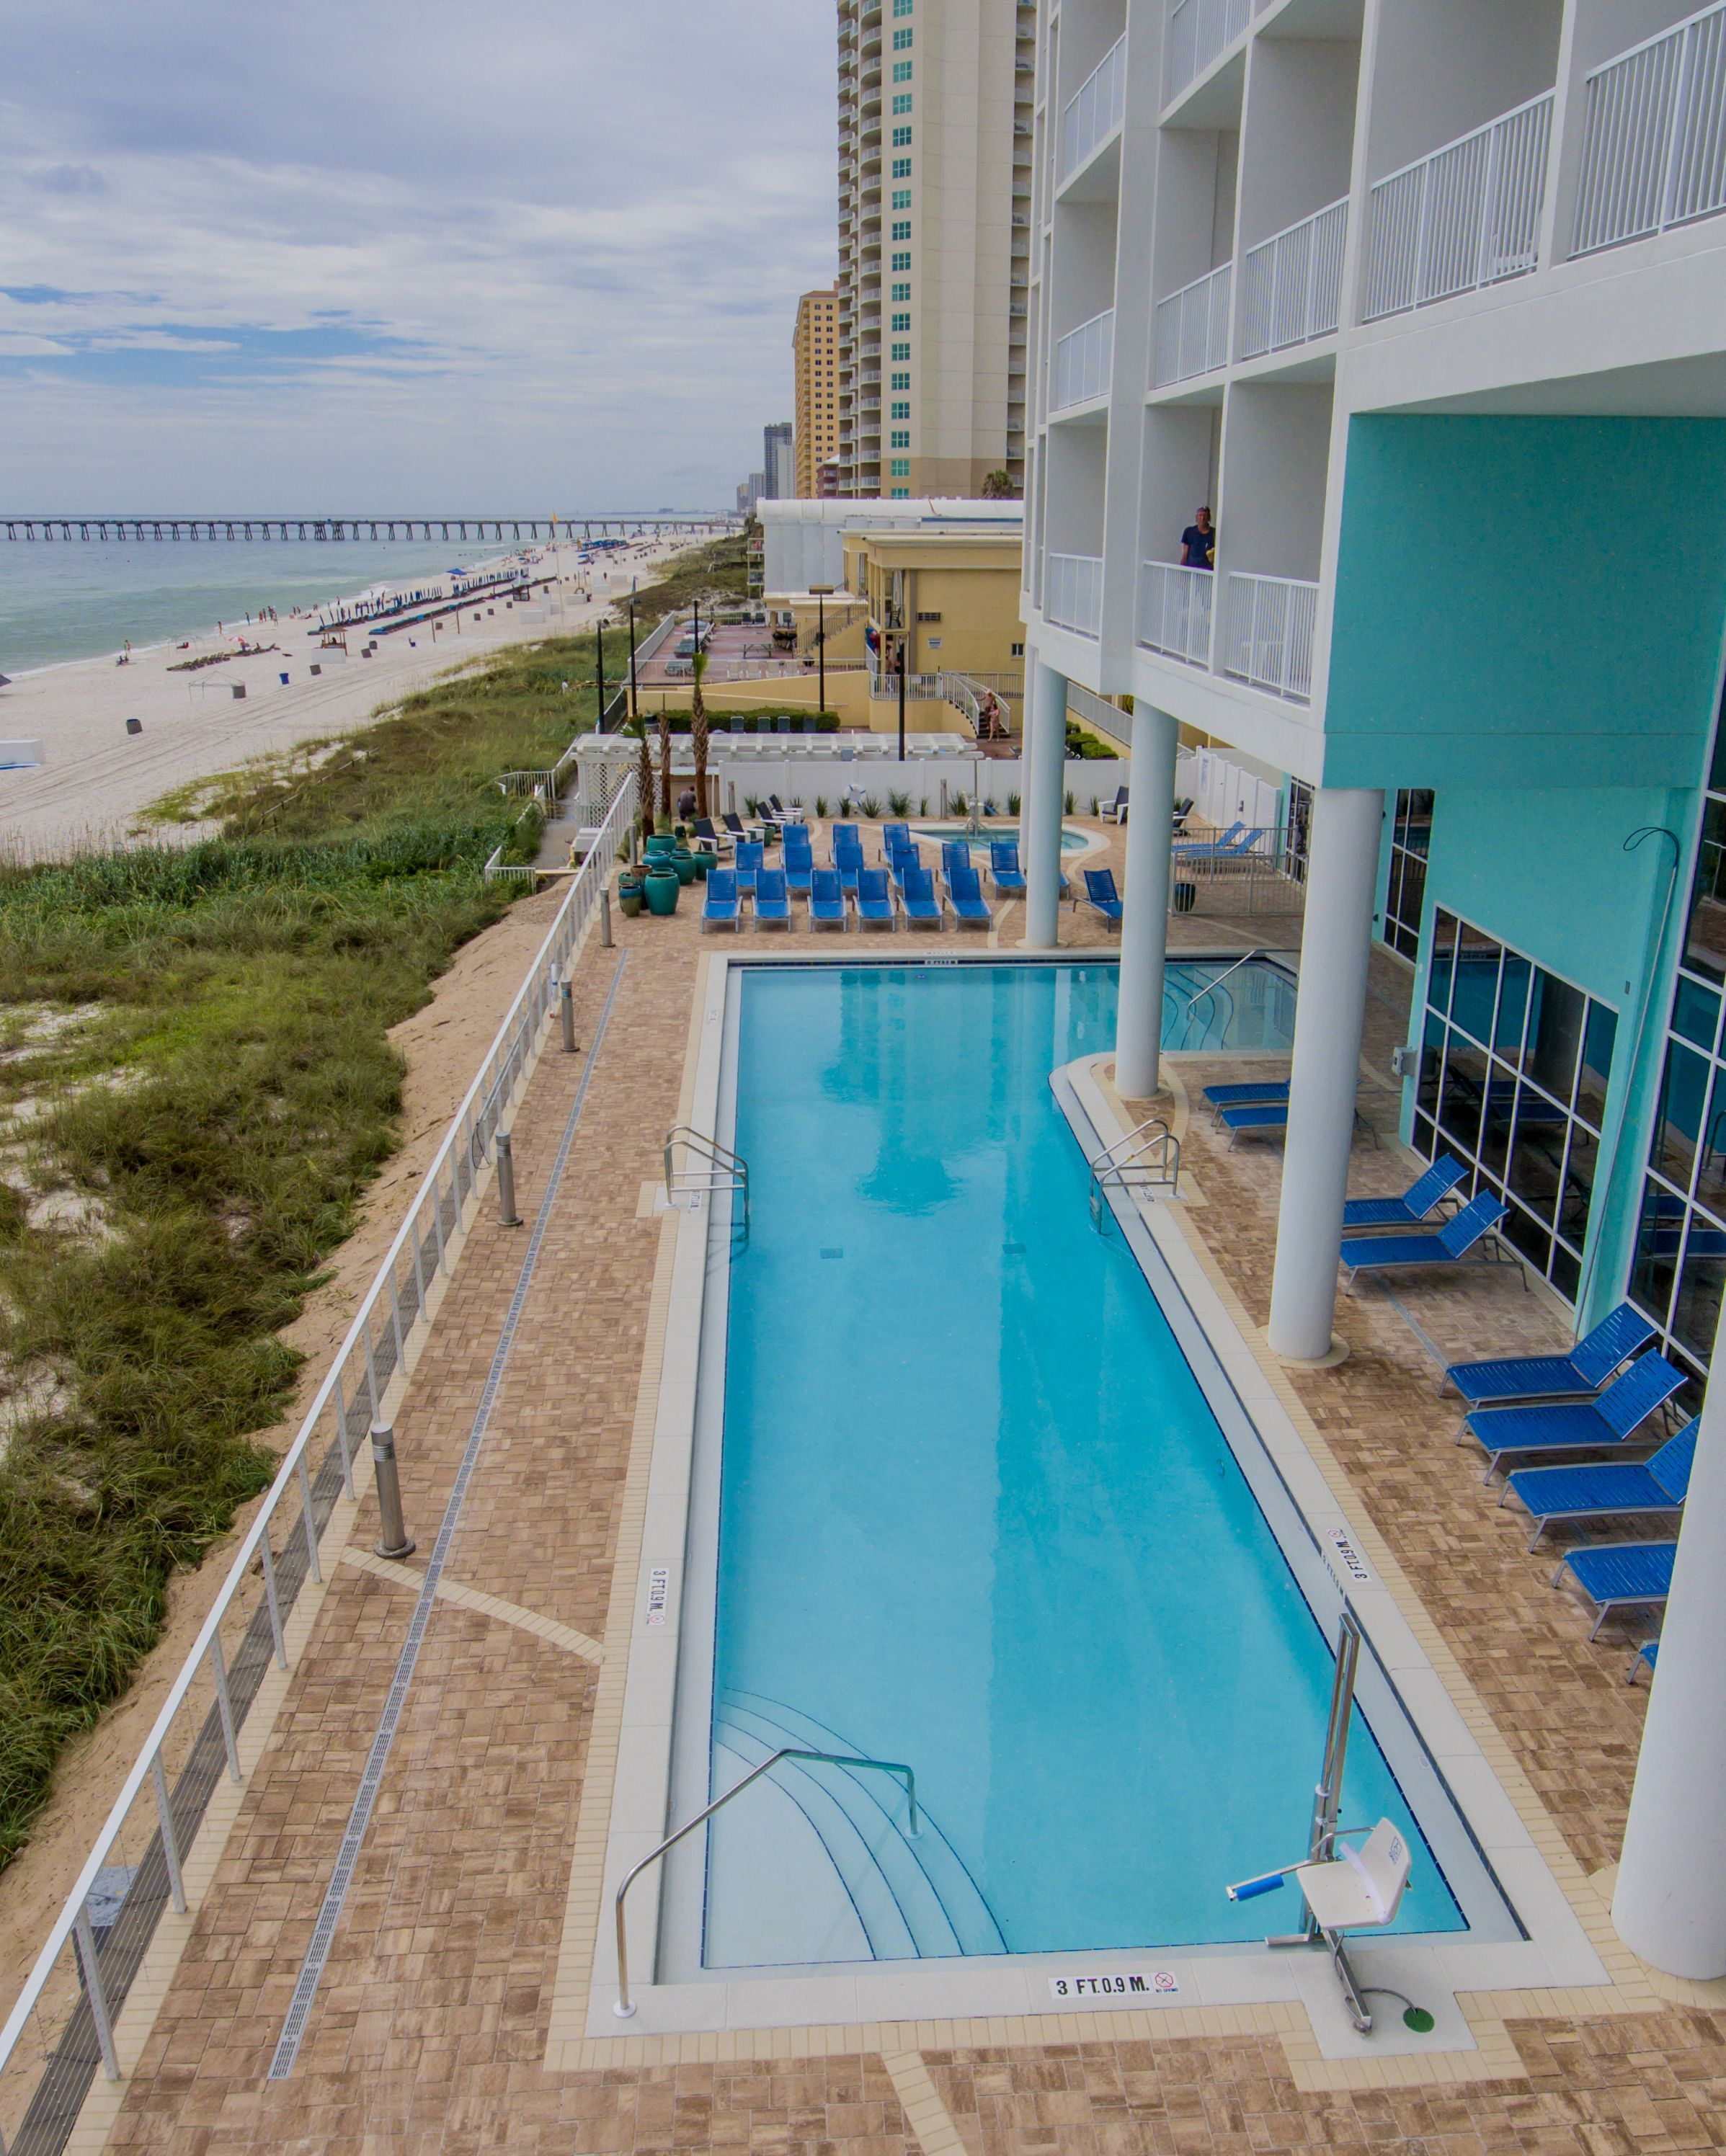 Relax By The Pool Lay Out On The Beach There S Plenty Of Room